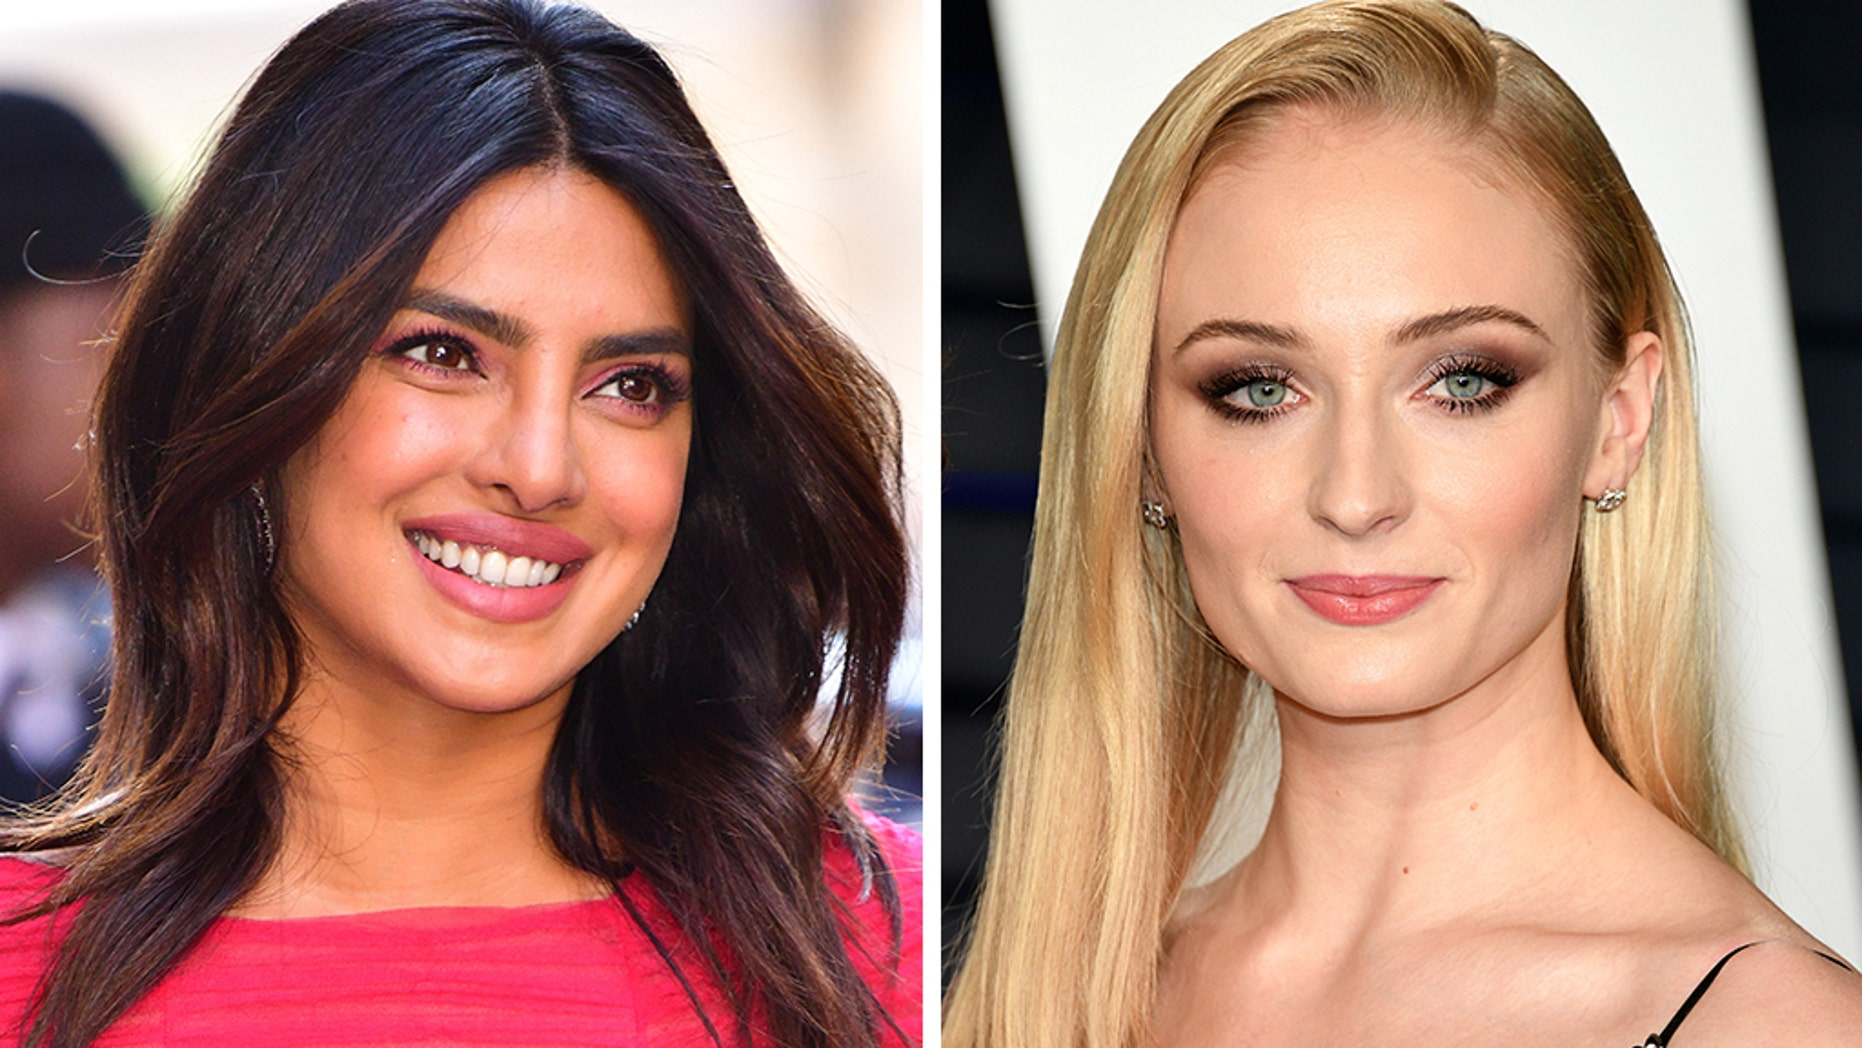 dd542a08072c Actresses Priyanka Chopra, left, and Sophie Turner enjoyed some fun in the  sun with